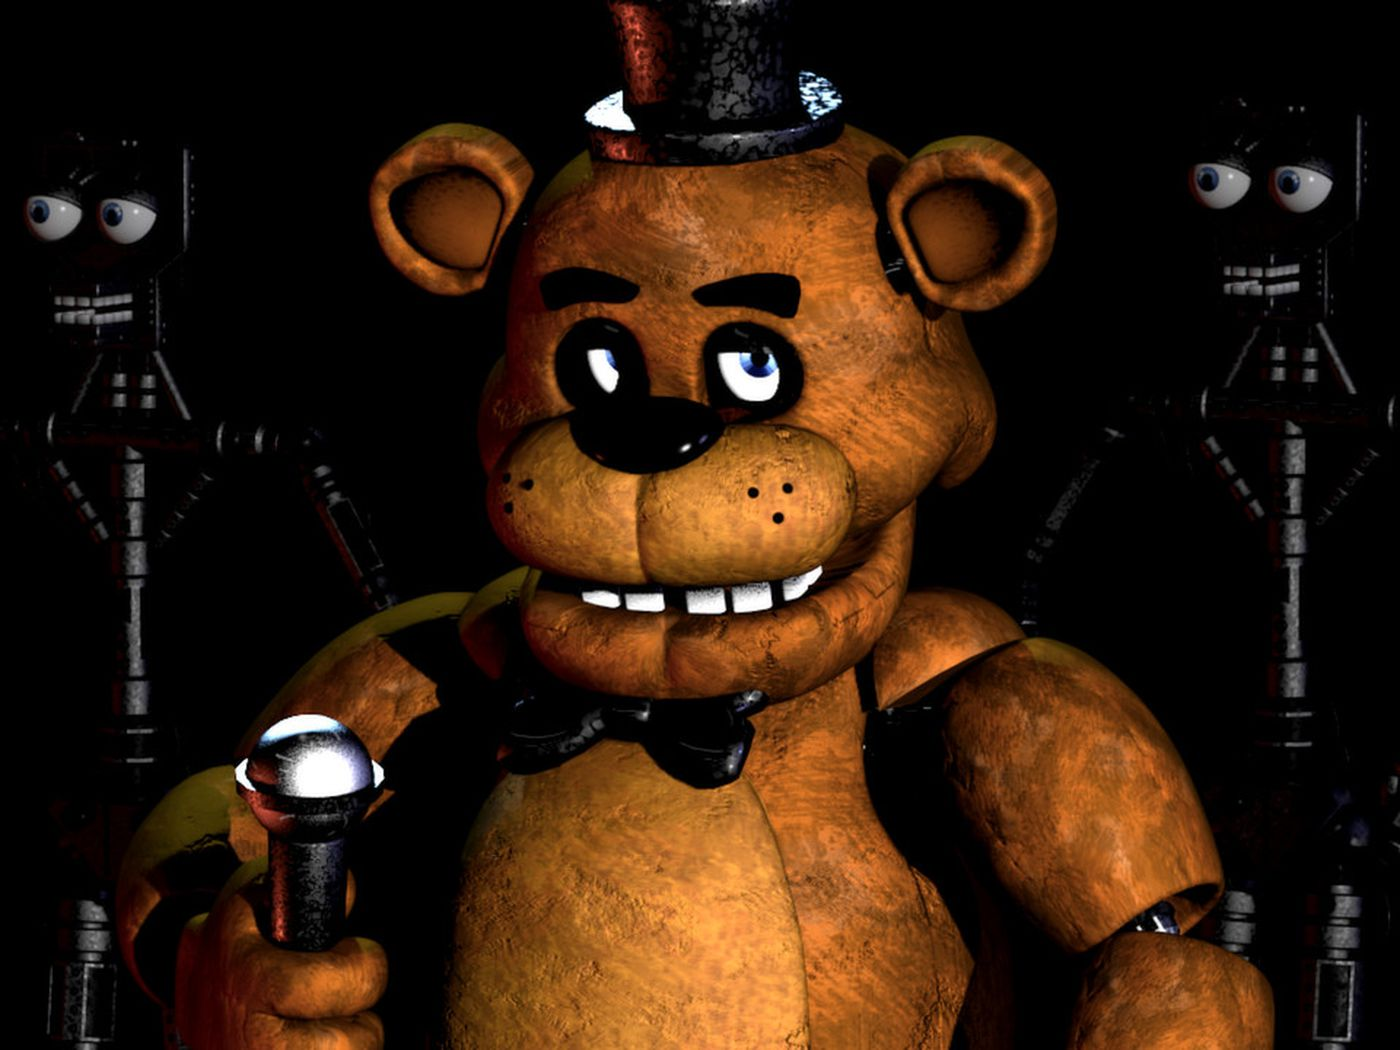 Harry Potter director to helm Five Nights at Freddy's movie - Polygon